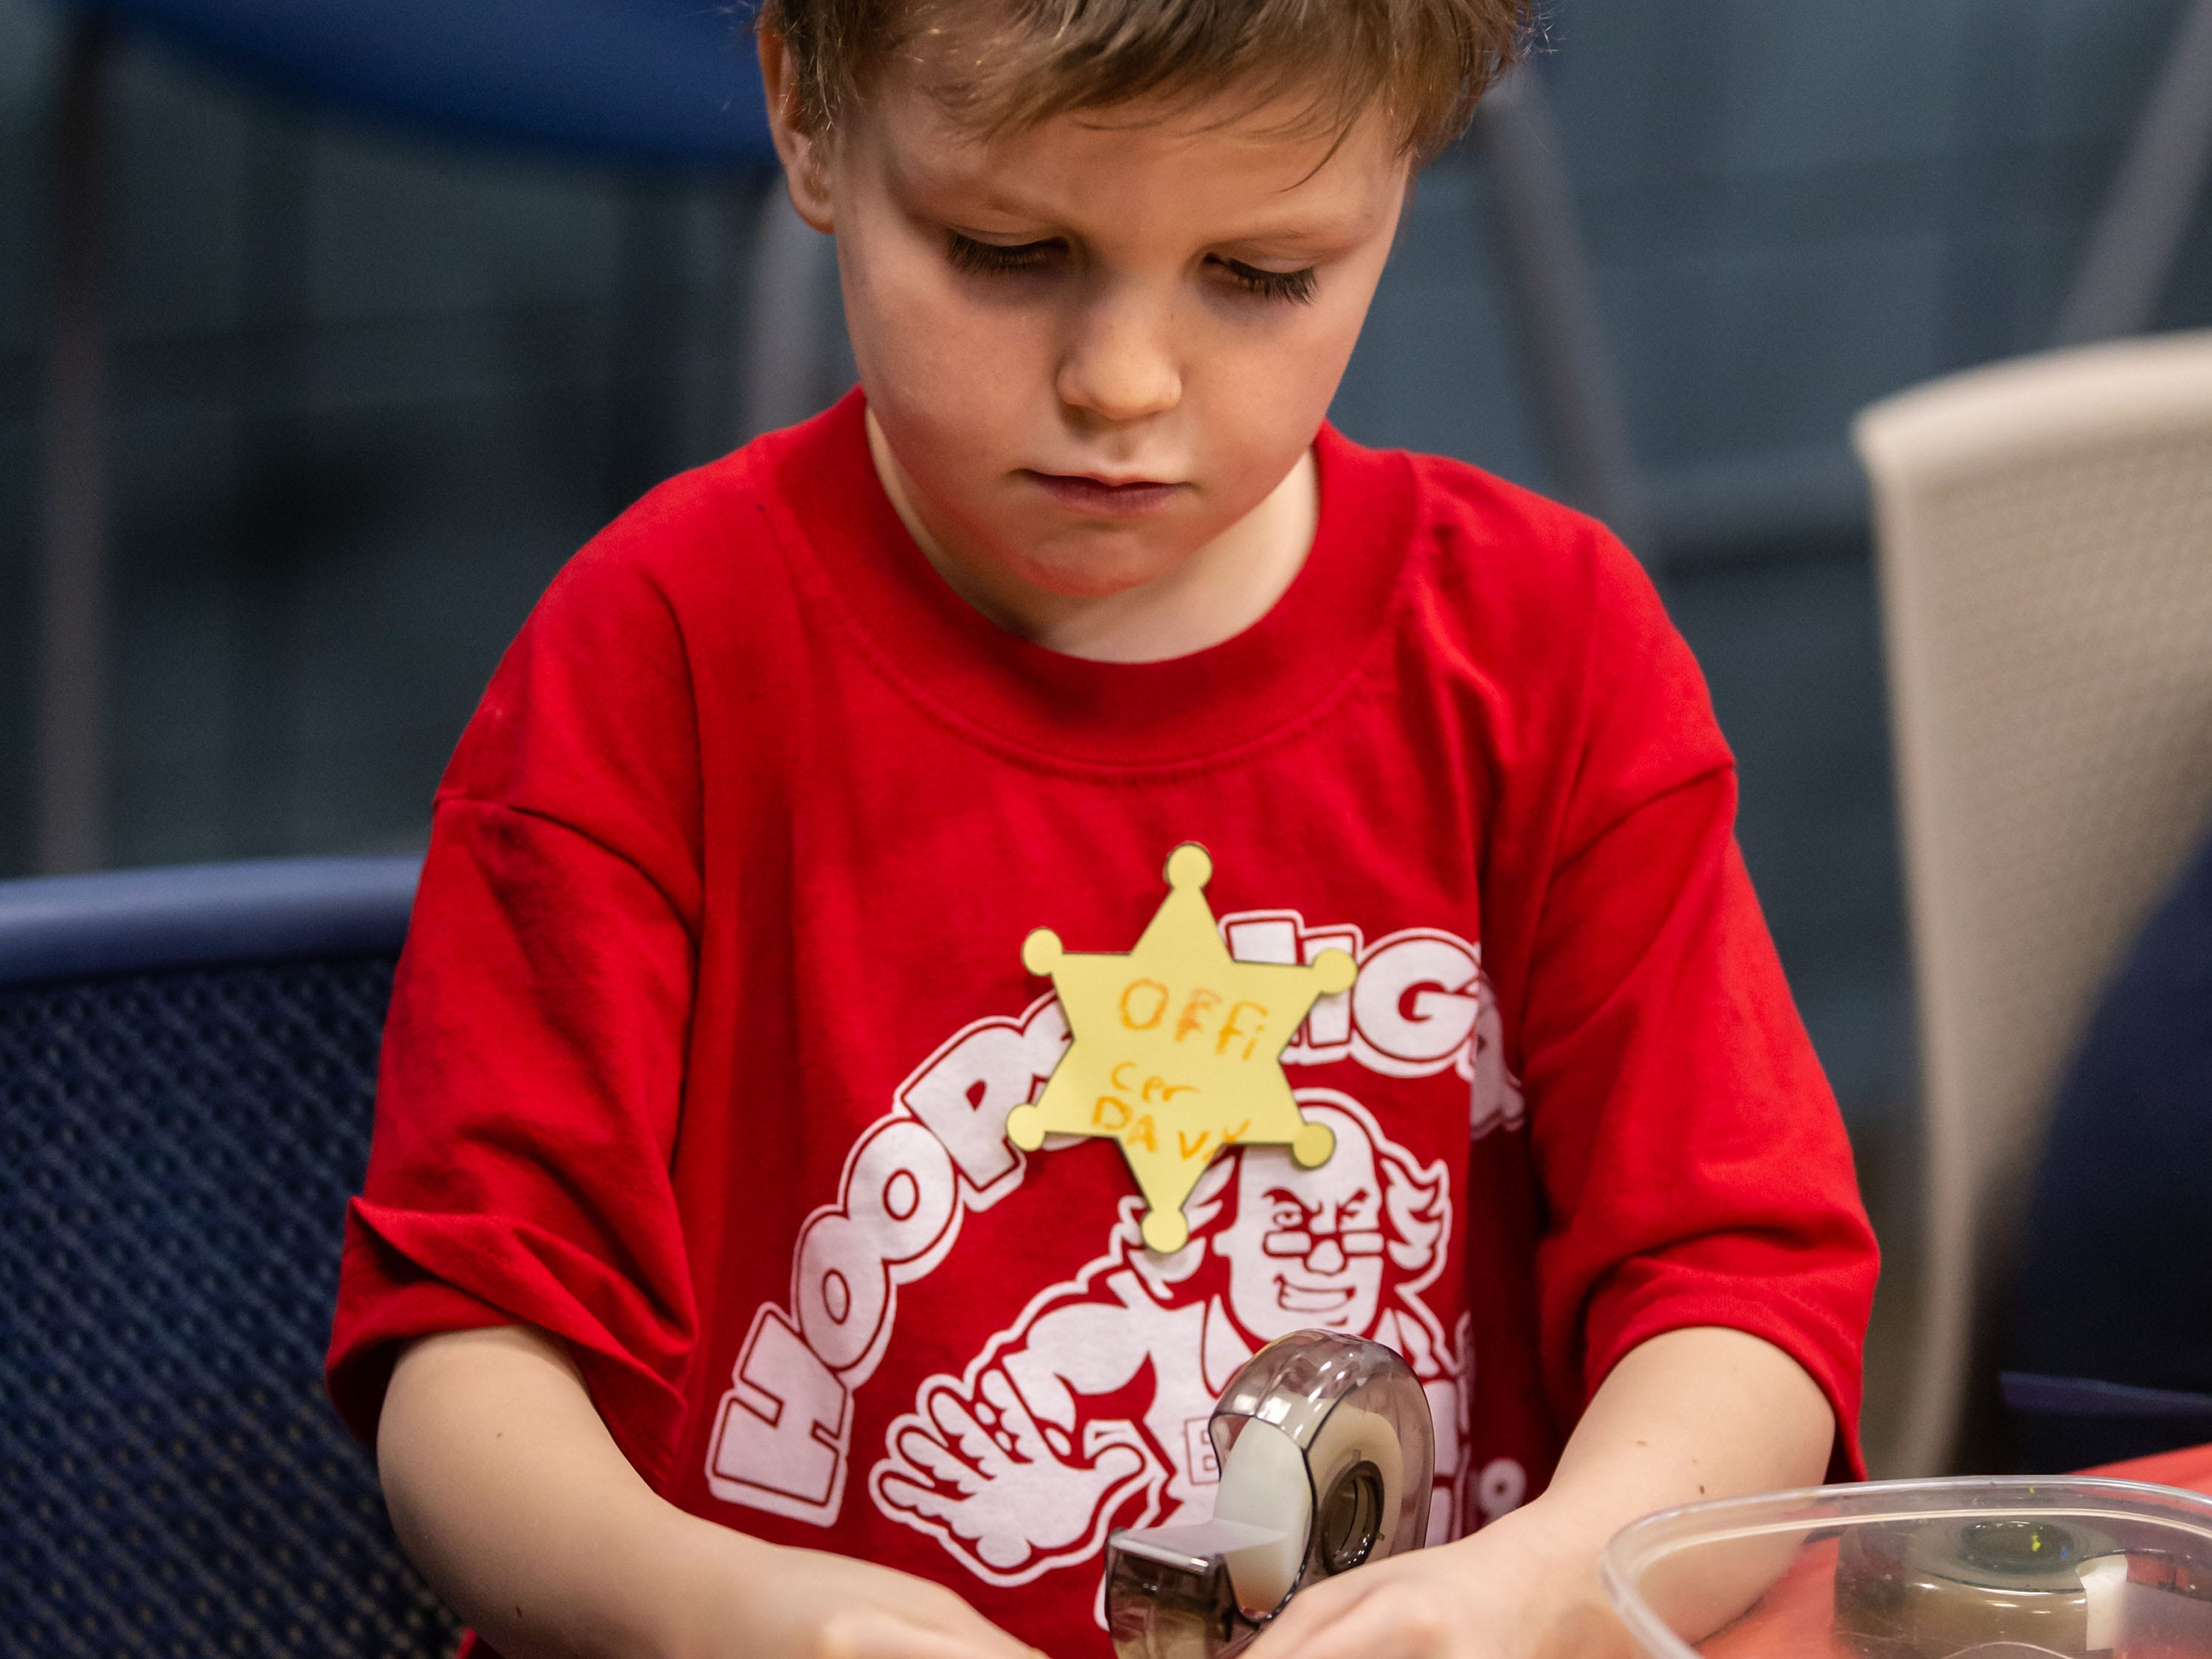 Six-year-old Davy Allar of Menomonee Falls works on a craft project during the Hometown Hoedown NEA Big-Read Kickoff Event at the Tri County YMCA in Menomonee Falls on Saturday, Feb. 23, 2019. The event featured live music, food, games, and western themed activities for the whole family.